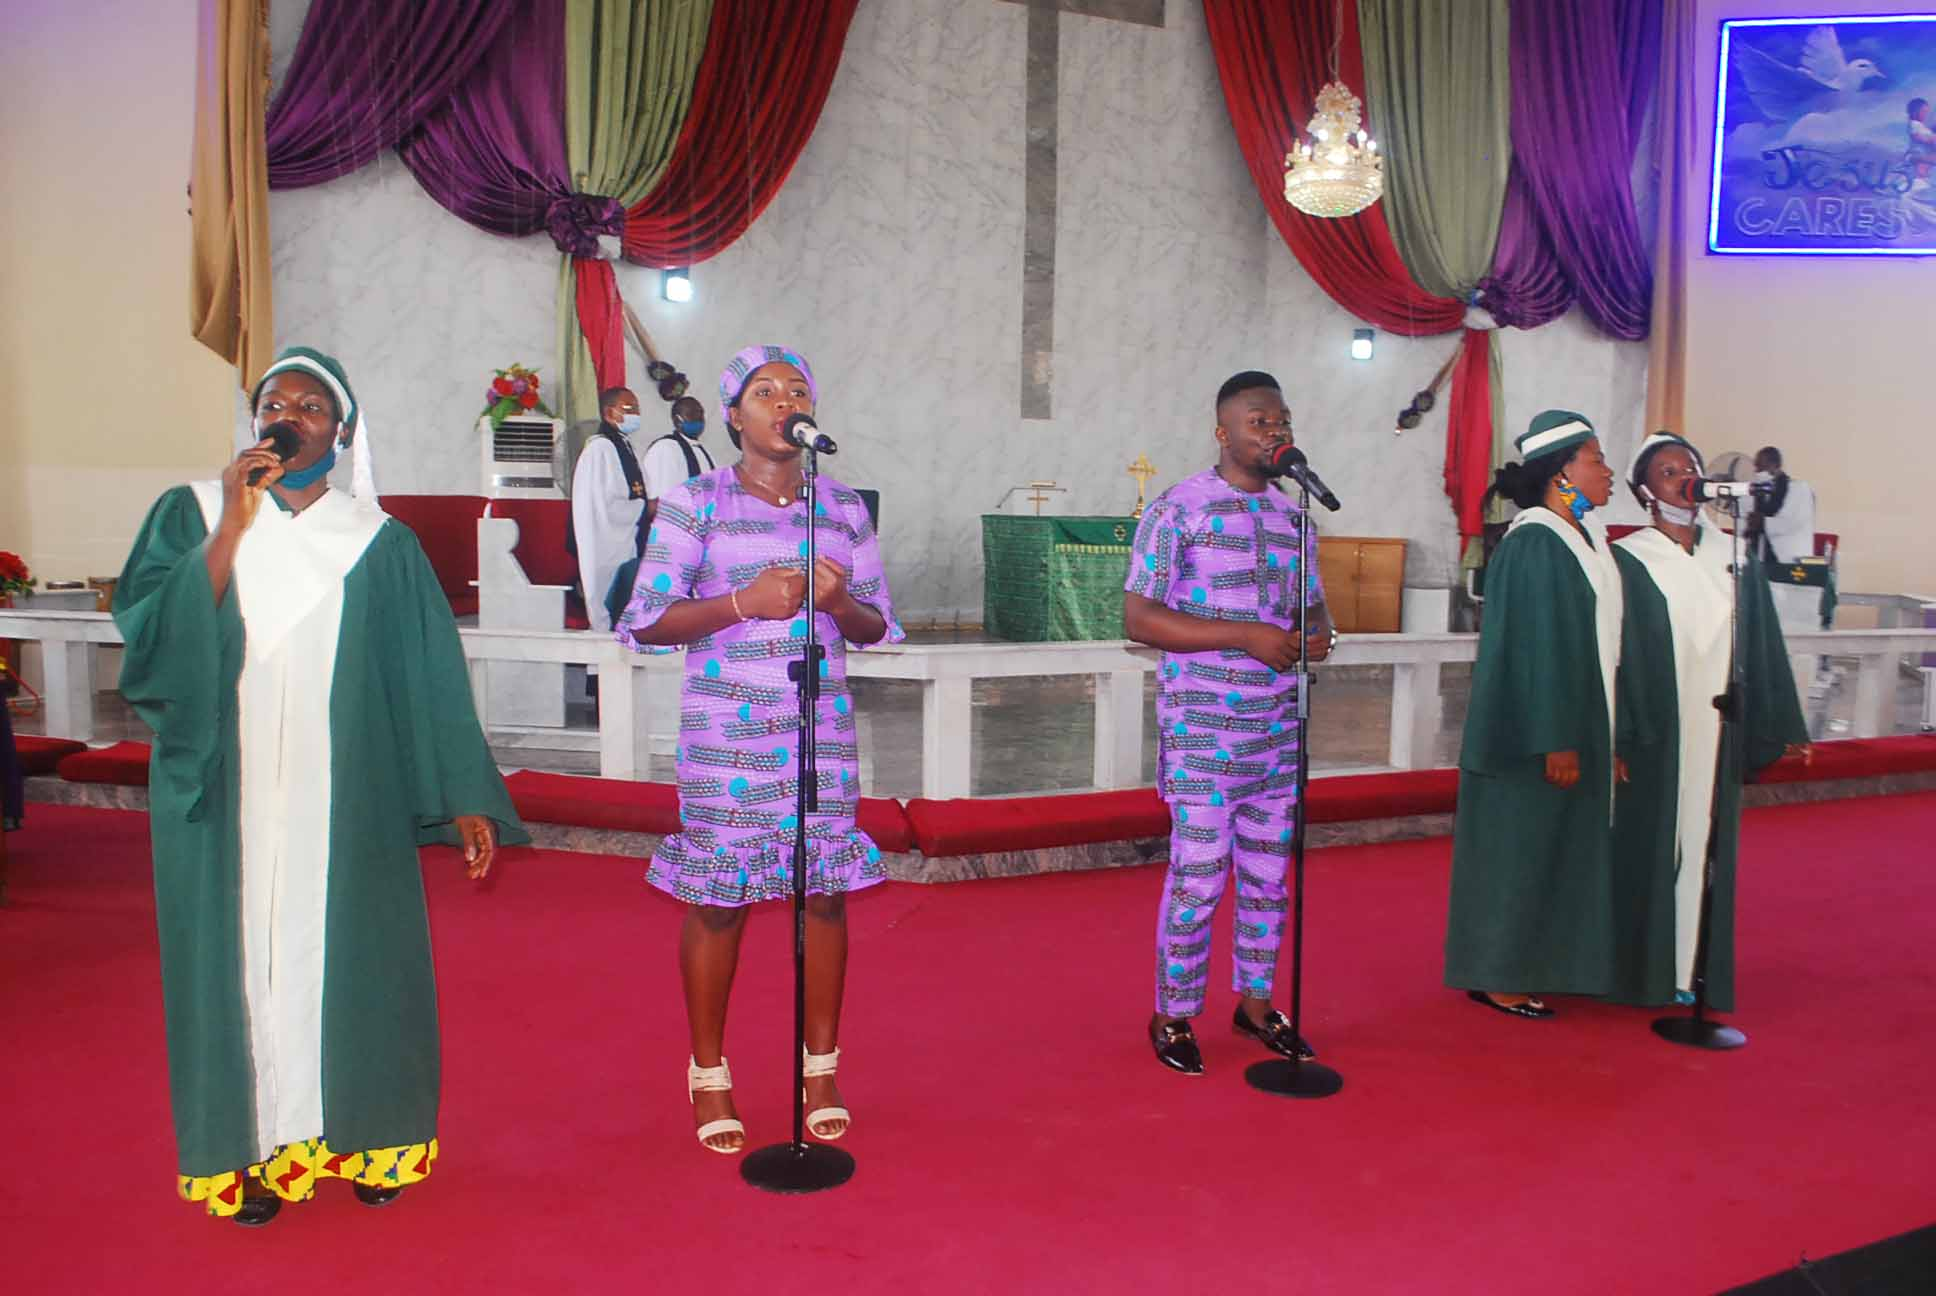 Praise and worship section...